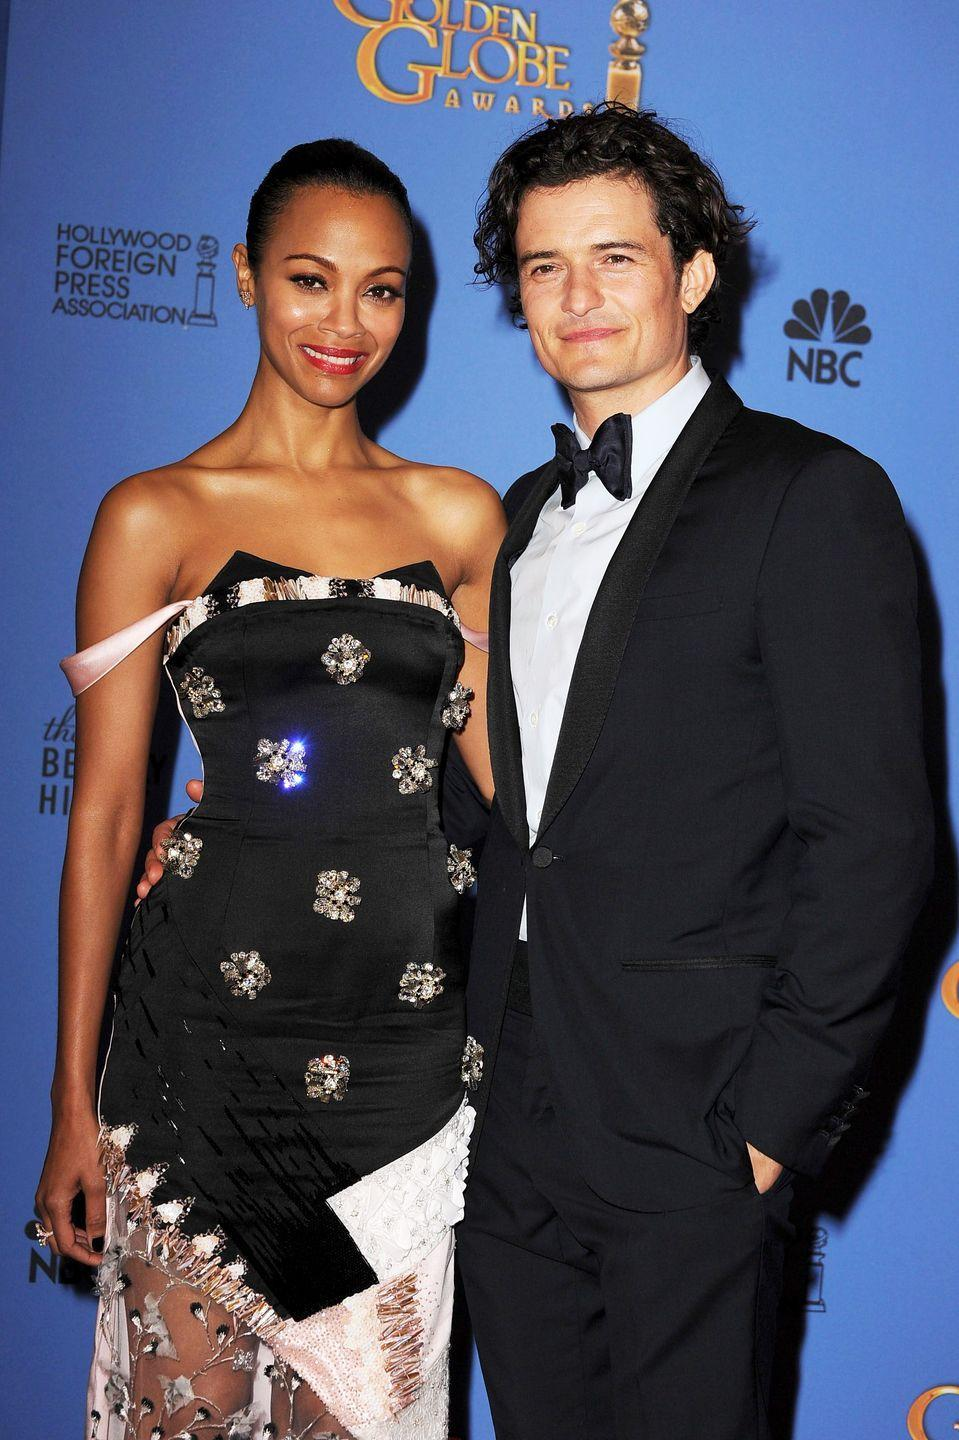 "<p>When asked what he thought about his co-star in the 2004 thriller <em>Haven</em> calling their kiss ""gross,"" Orlando Bloom couldn't agree more. </p><p>""I hated kissing Zoe too! I was like, 'Take your tongue out of my mouth, please. Your boyfriend is standing right there,'"" he told <em><a href=""https://people.com/celebrity/orlando-blooms-awkward-love-scene/"" rel=""nofollow noopener"" target=""_blank"" data-ylk=""slk:People"" class=""link rapid-noclick-resp"">People</a></em>. ""Most people think kissing beautiful costars must be great. But it's always awkward, man.""</p>"